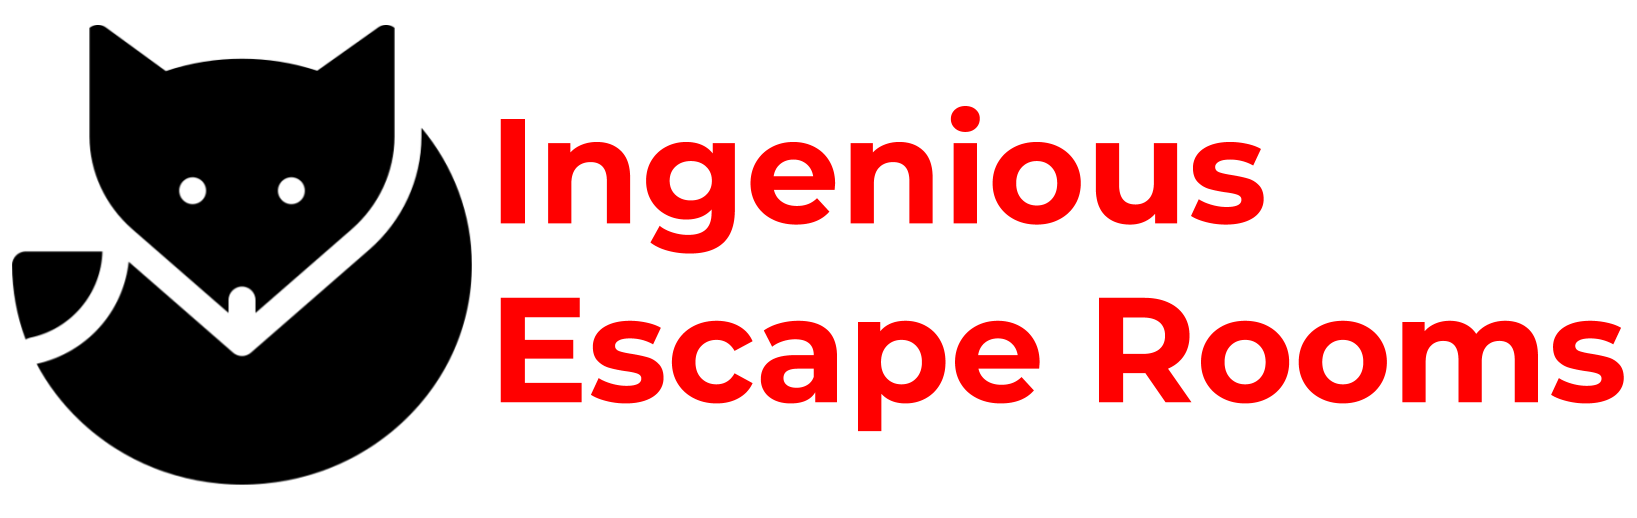 Ingenious Escape Rooms |   er25